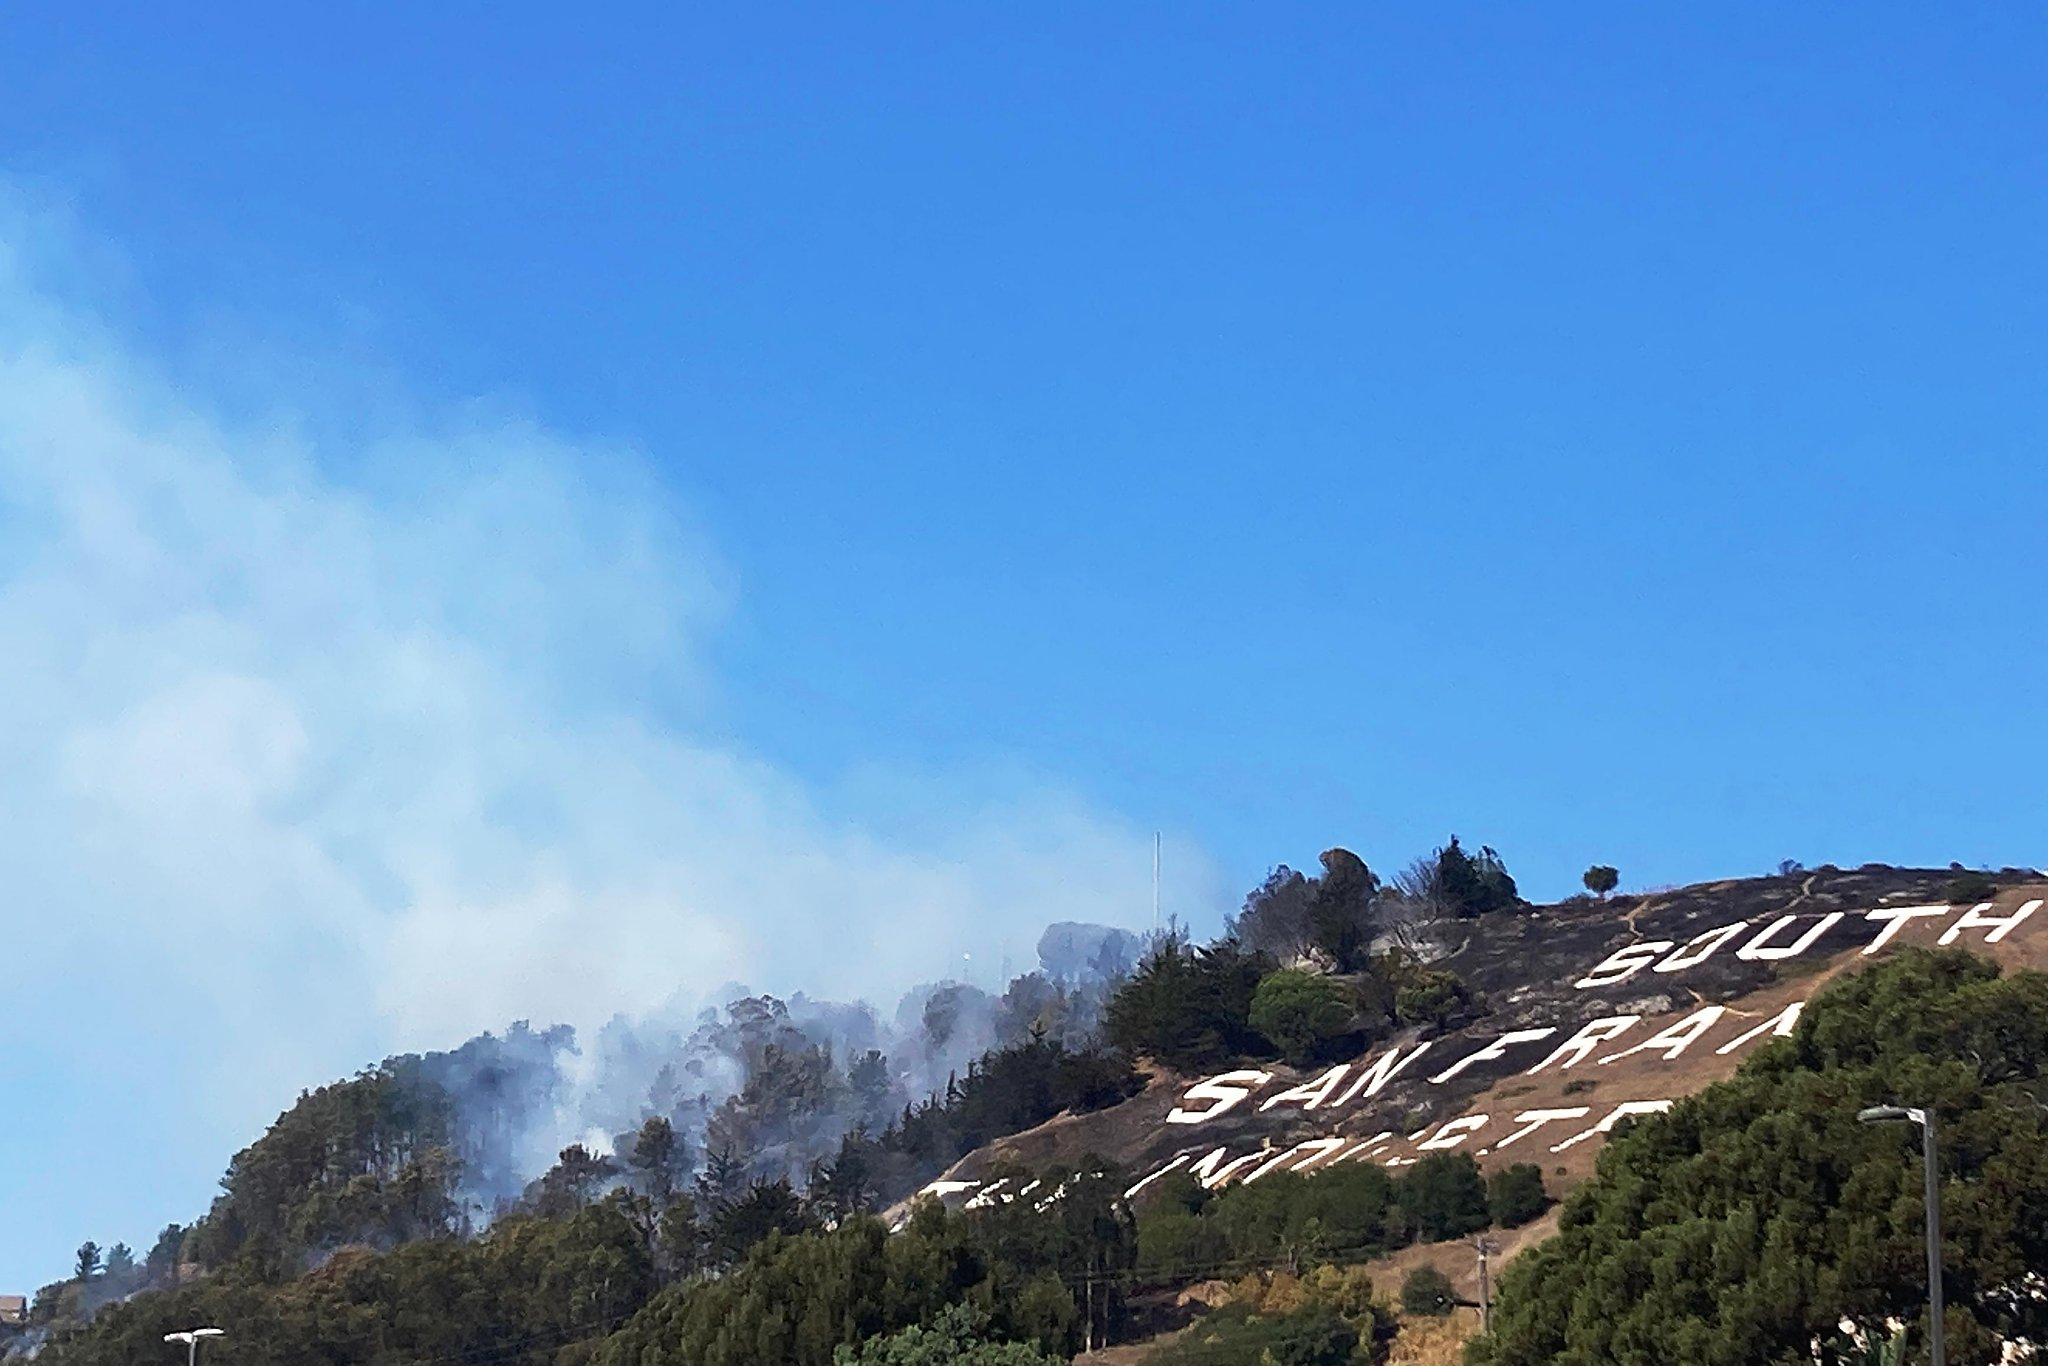 Evacuations ordered as fire burns near South S.F.'s Hillside Sign